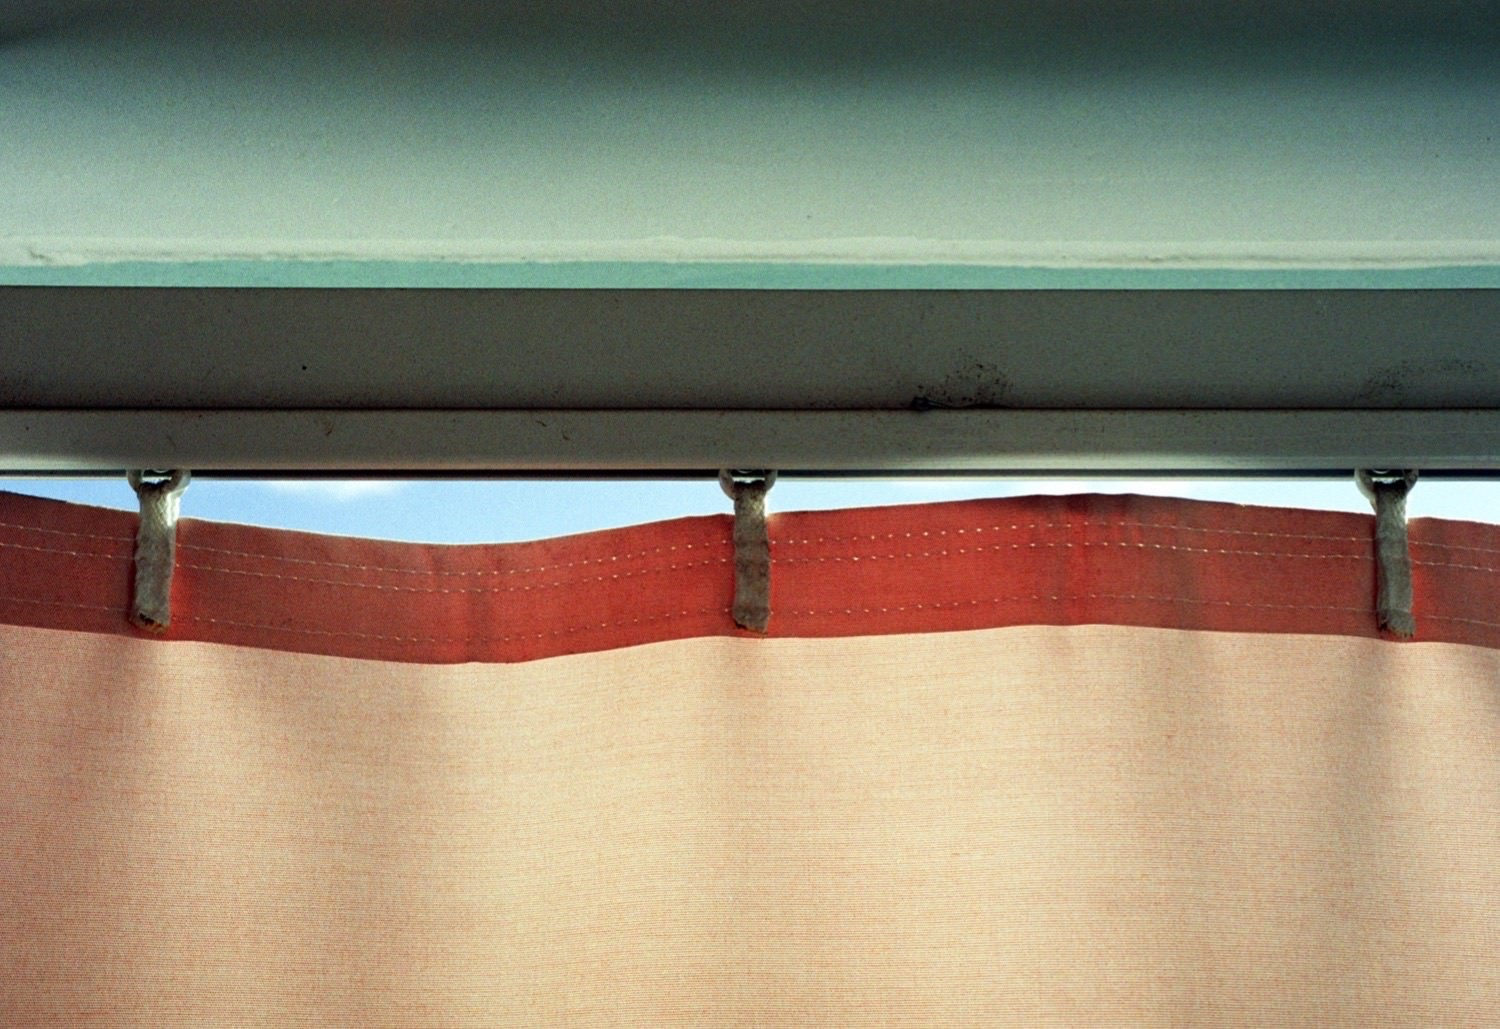 Zürich, November 2014 Archival pigment print with accompanying textDate: 2014/2018Size:19 1/8 x 32 ½ inches (framed)Edition: 4 of 5